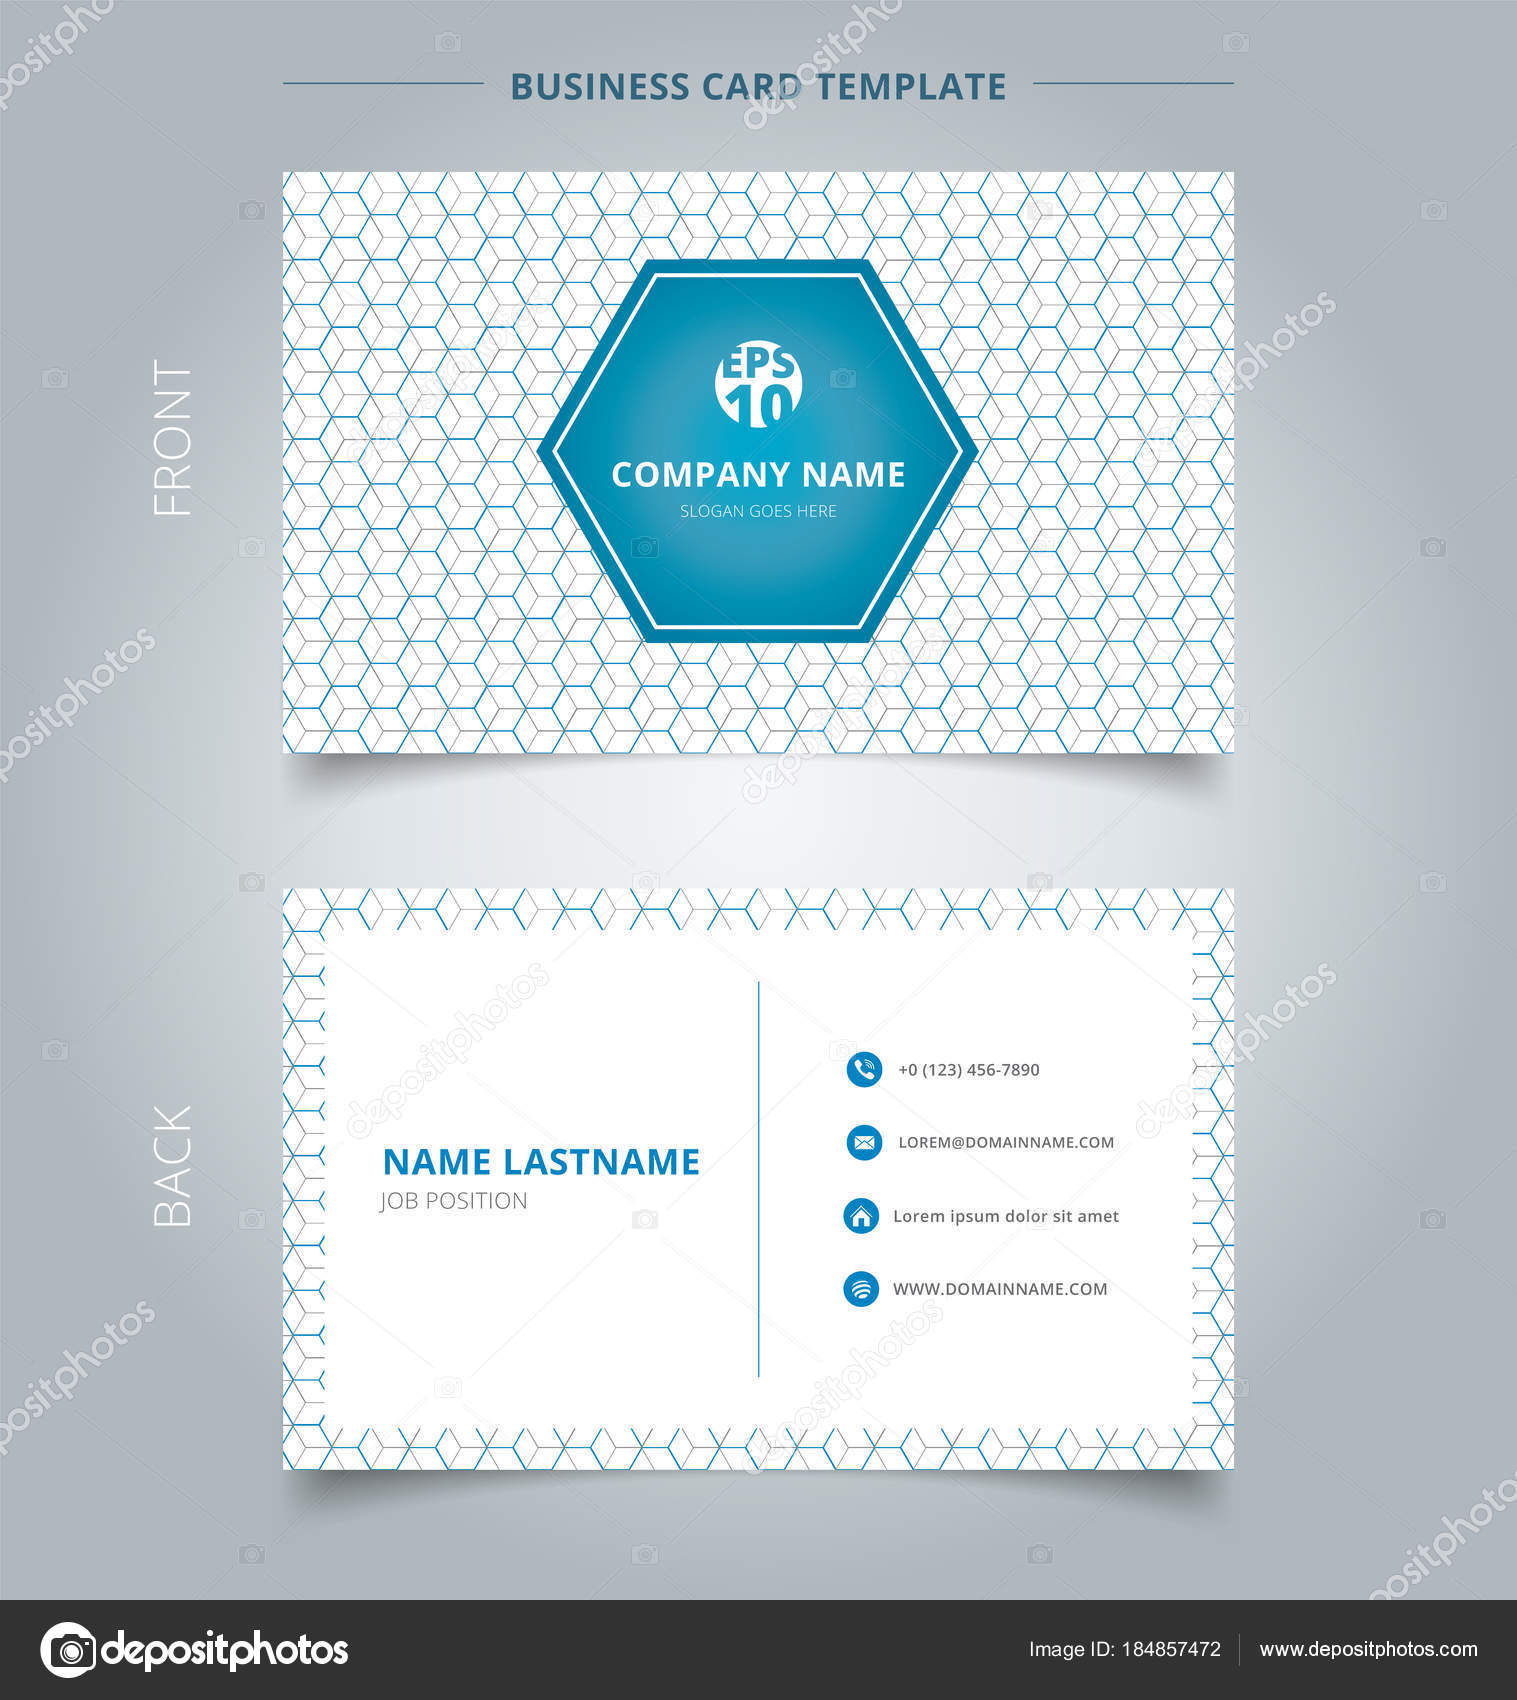 Creative business card and name card template geometric blue, gr ...